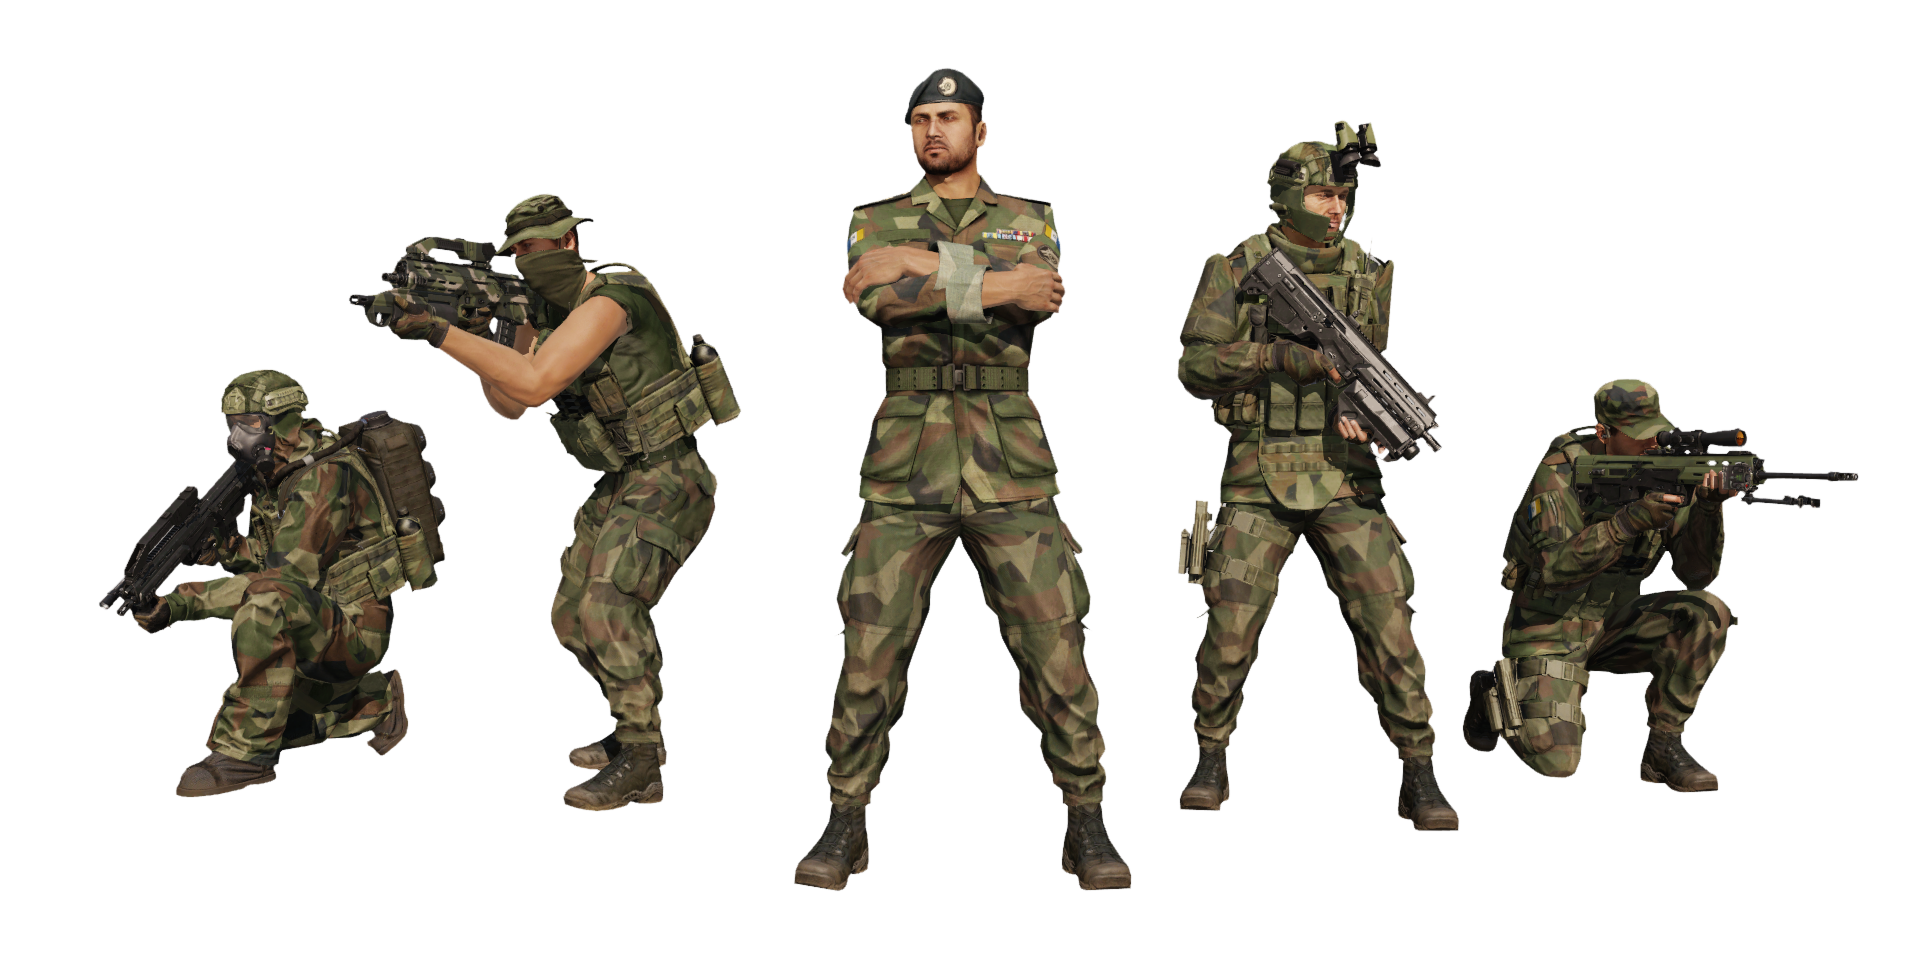 Livonian_Defense_Force.png